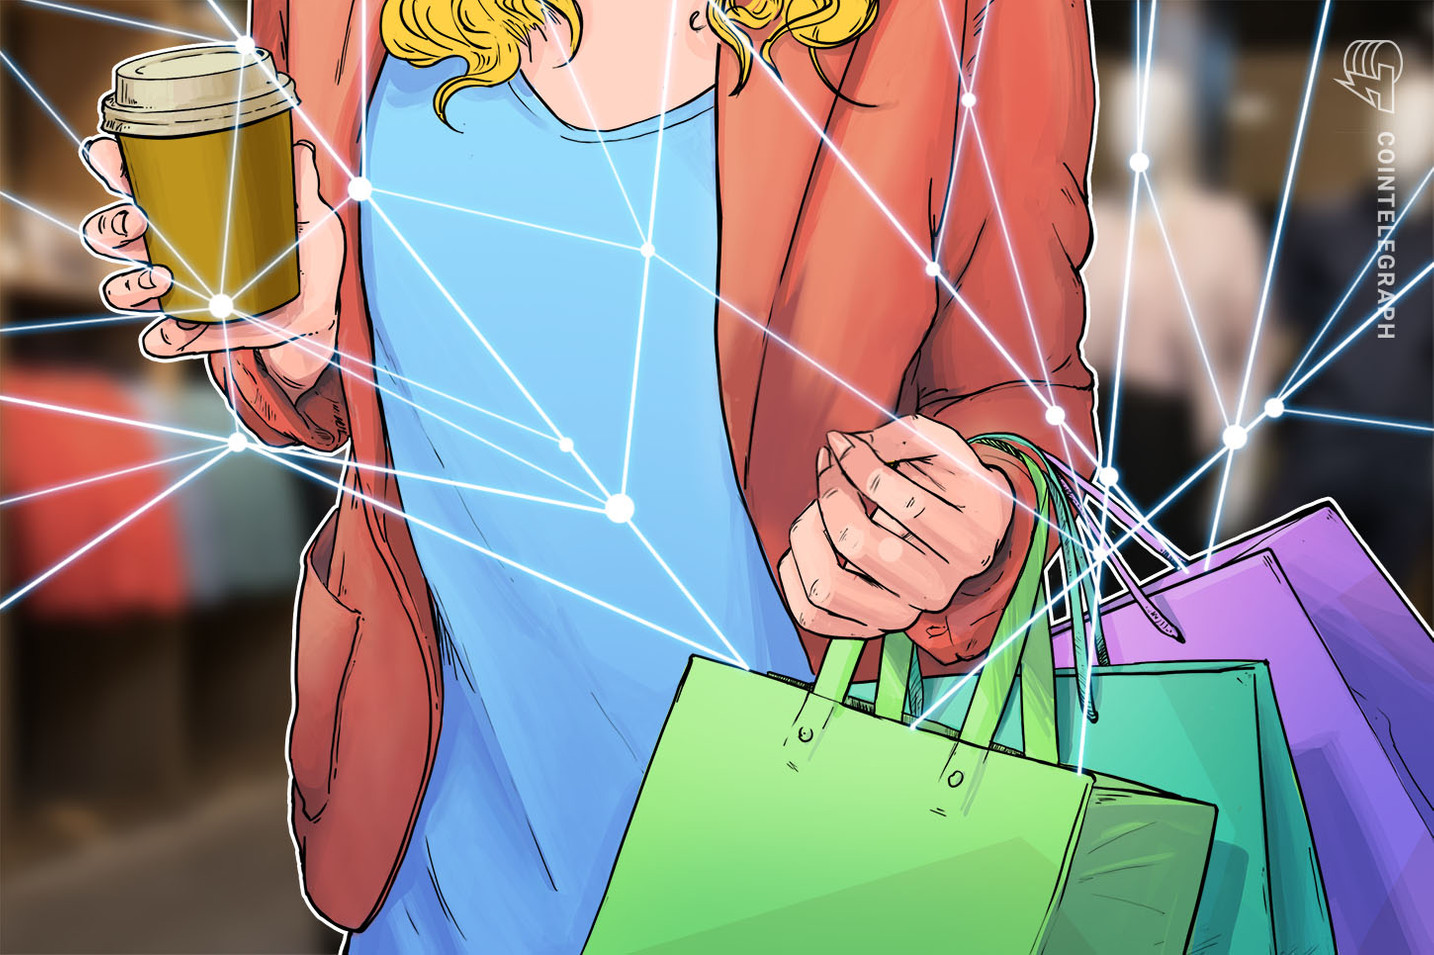 French Retail Chain Carrefour Registers Sales Boost Following Blockchain Integration